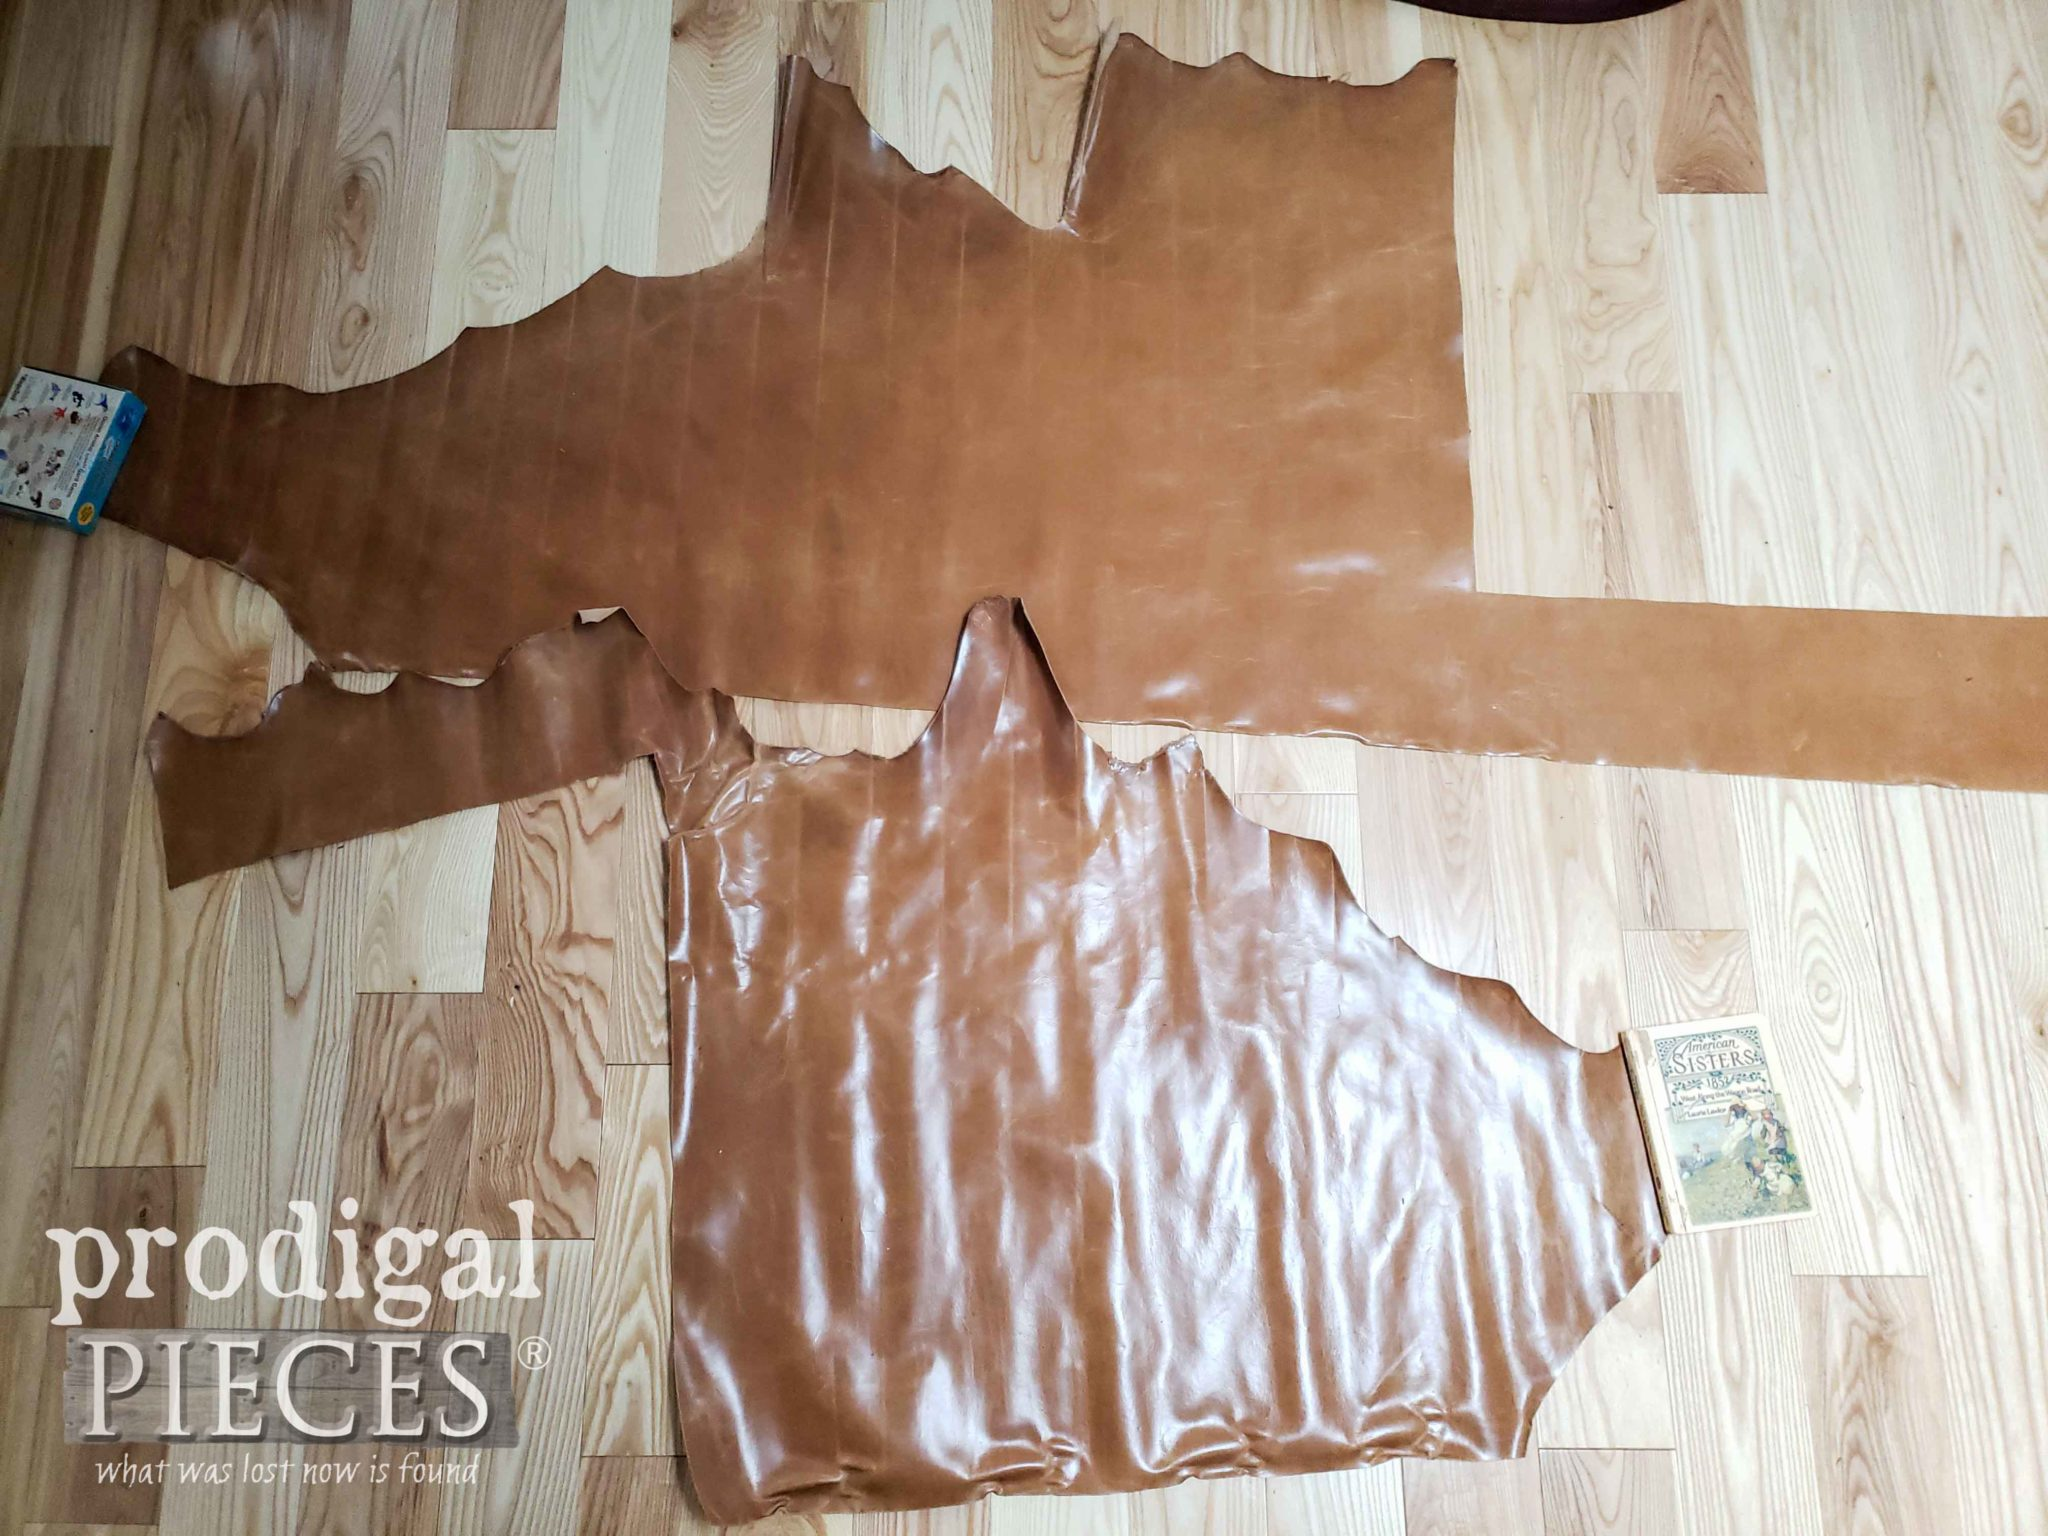 Uncut Leather for Vintage Office Chair Upholstery by Larissa of Prodigal Pieces | prodigalpieces.com